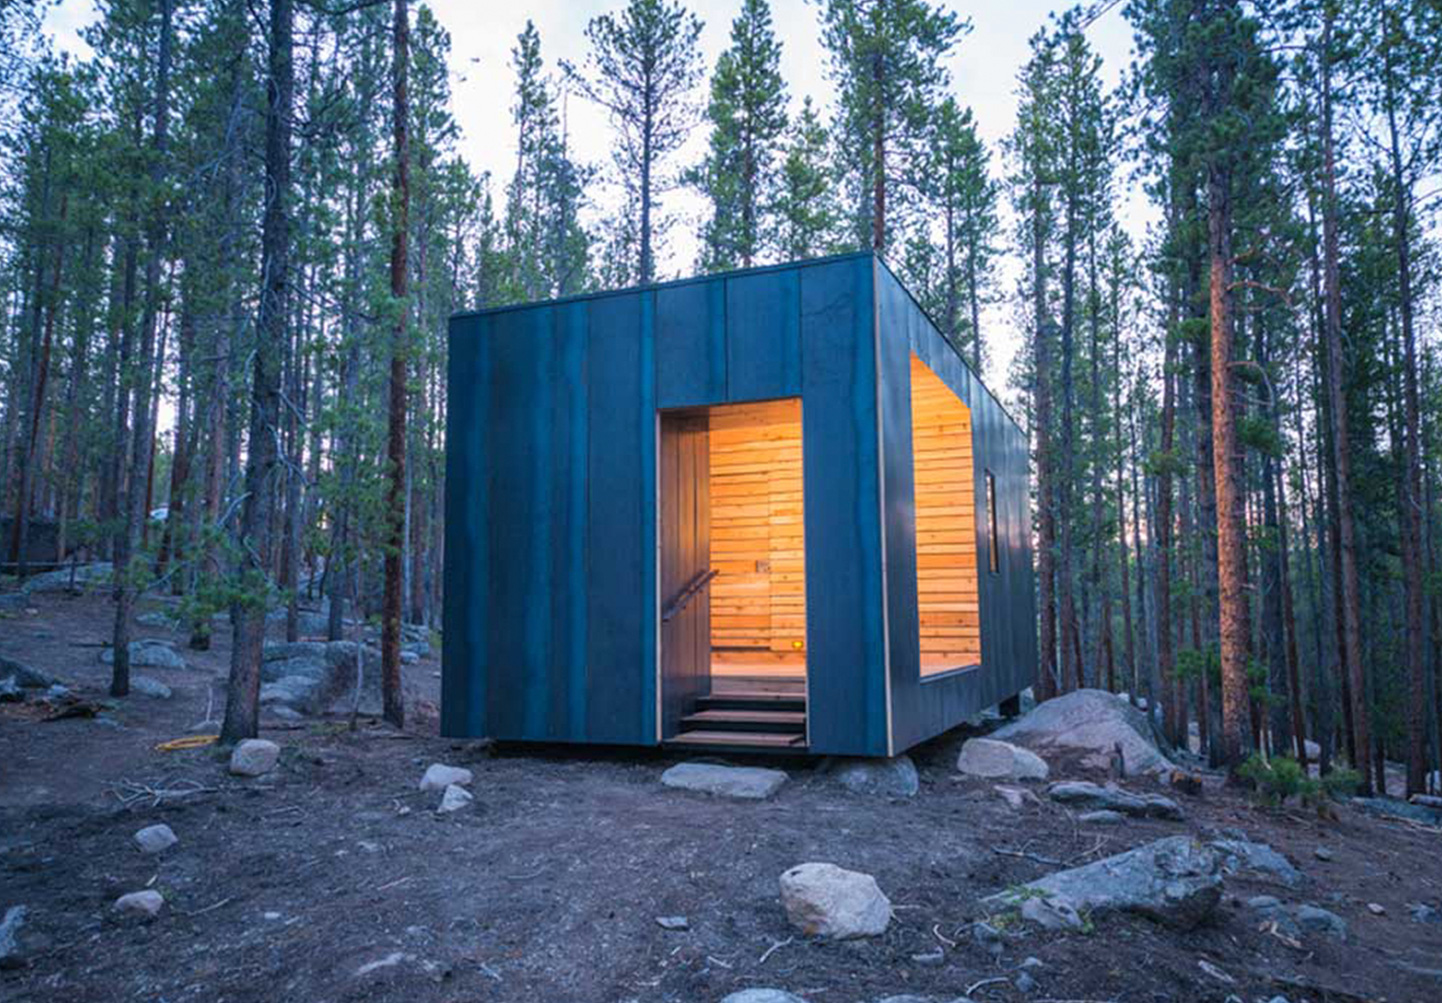 A steel clad cabin in a pine forest at dusk